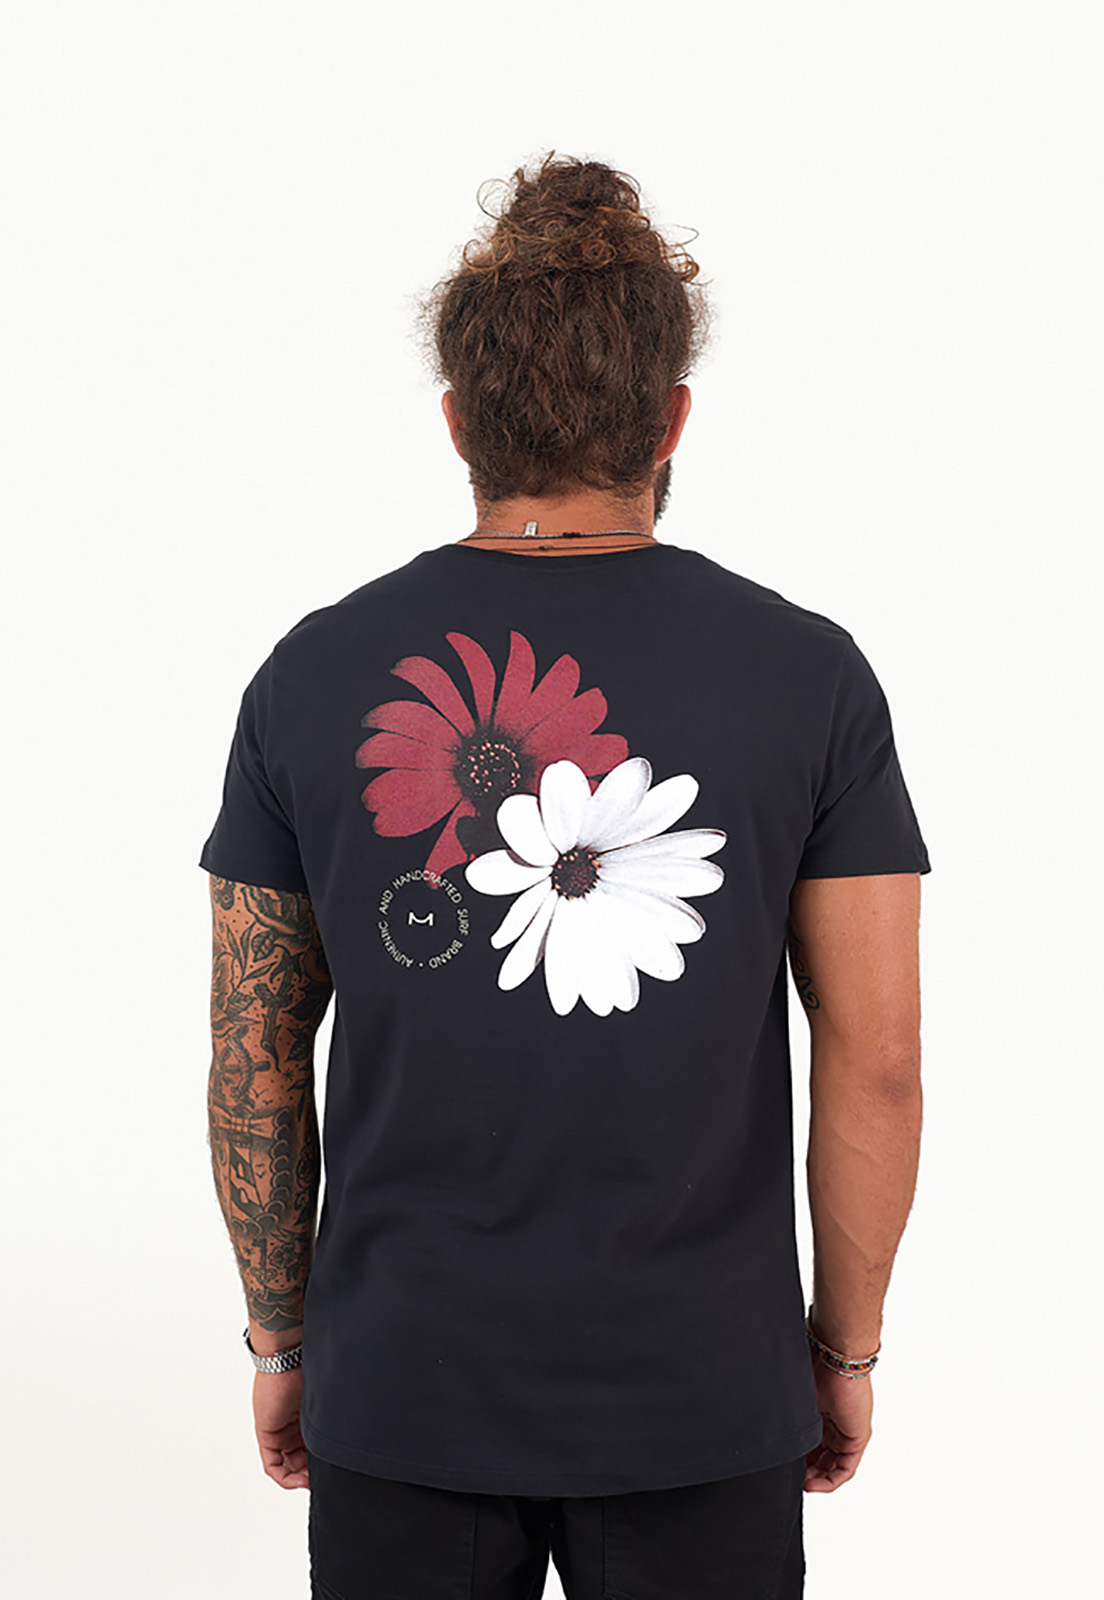 T-Shirt Flowers melty